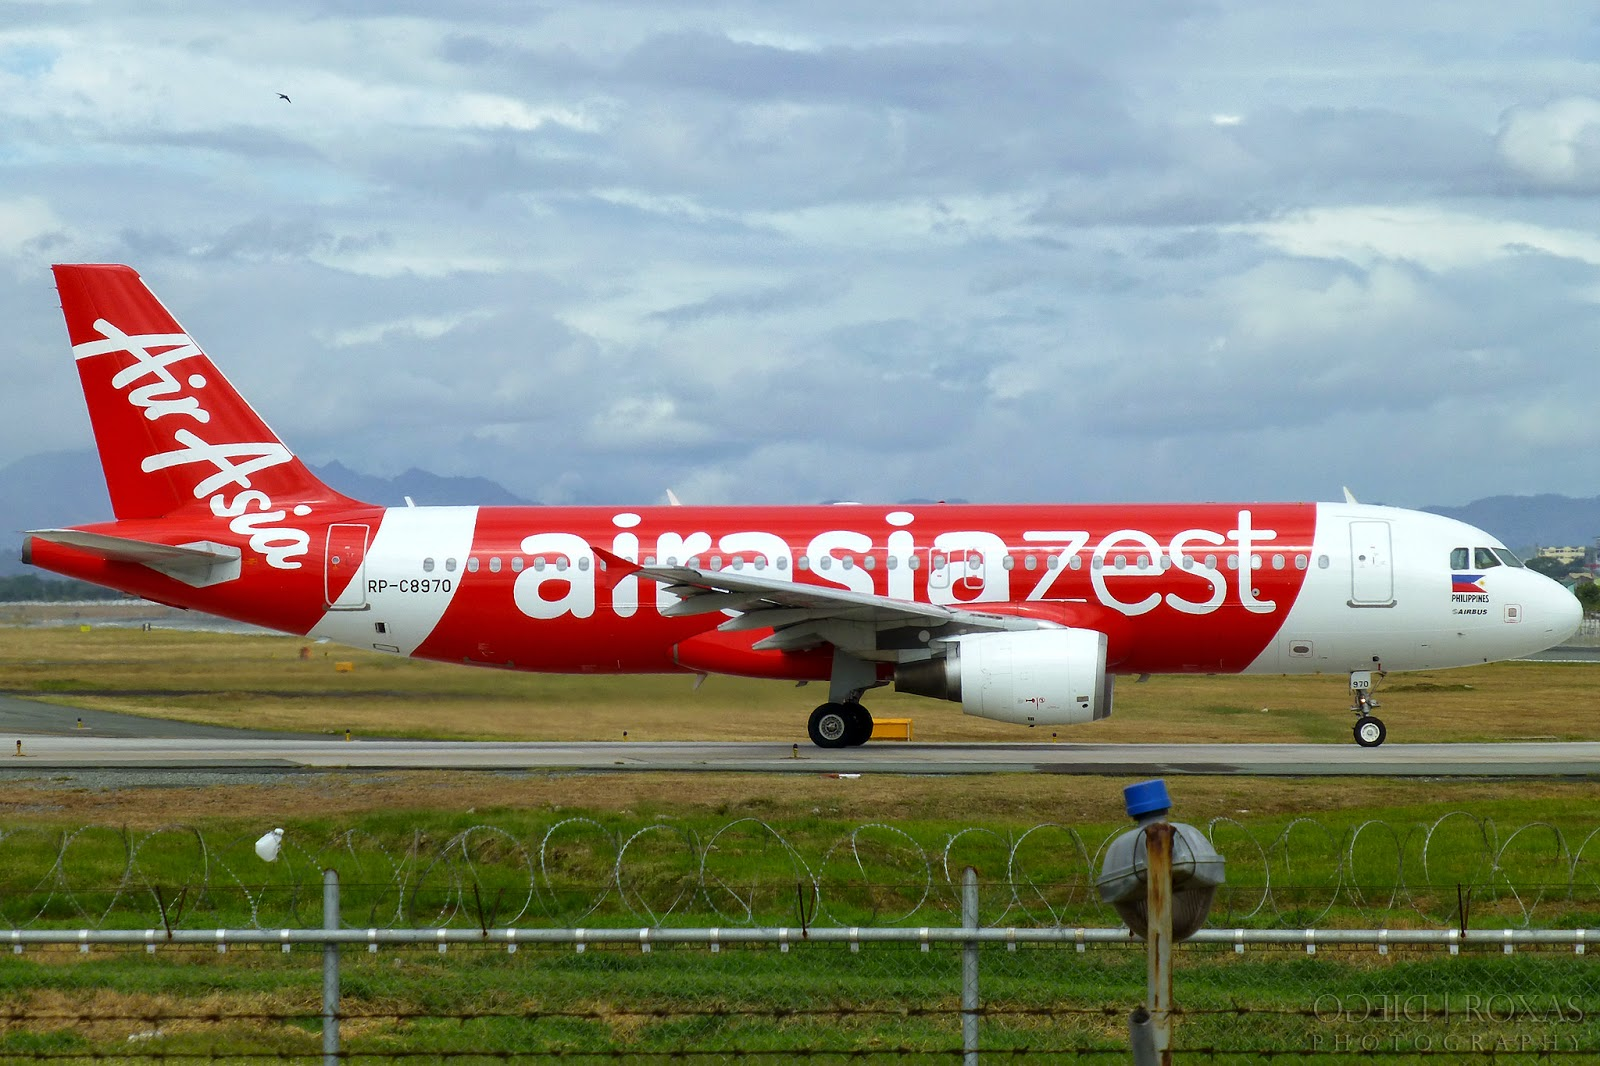 Air Asia Zest Transferring More International Flights to Terminal 3